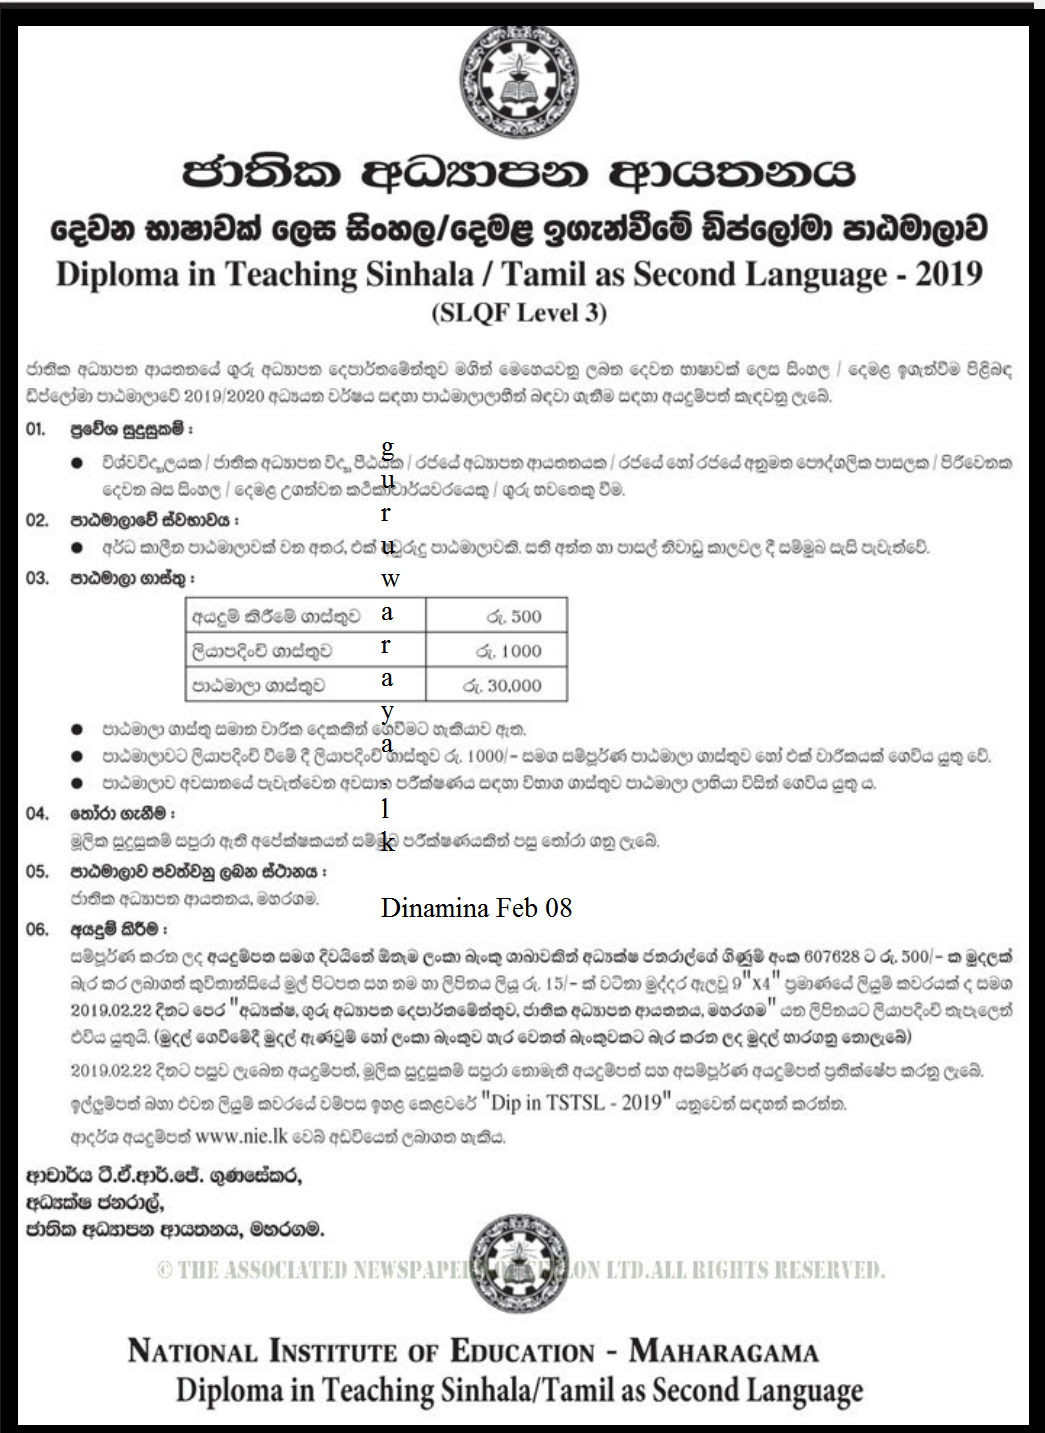 Diploma in Teaching Sinhala / Tamil as a Second Language